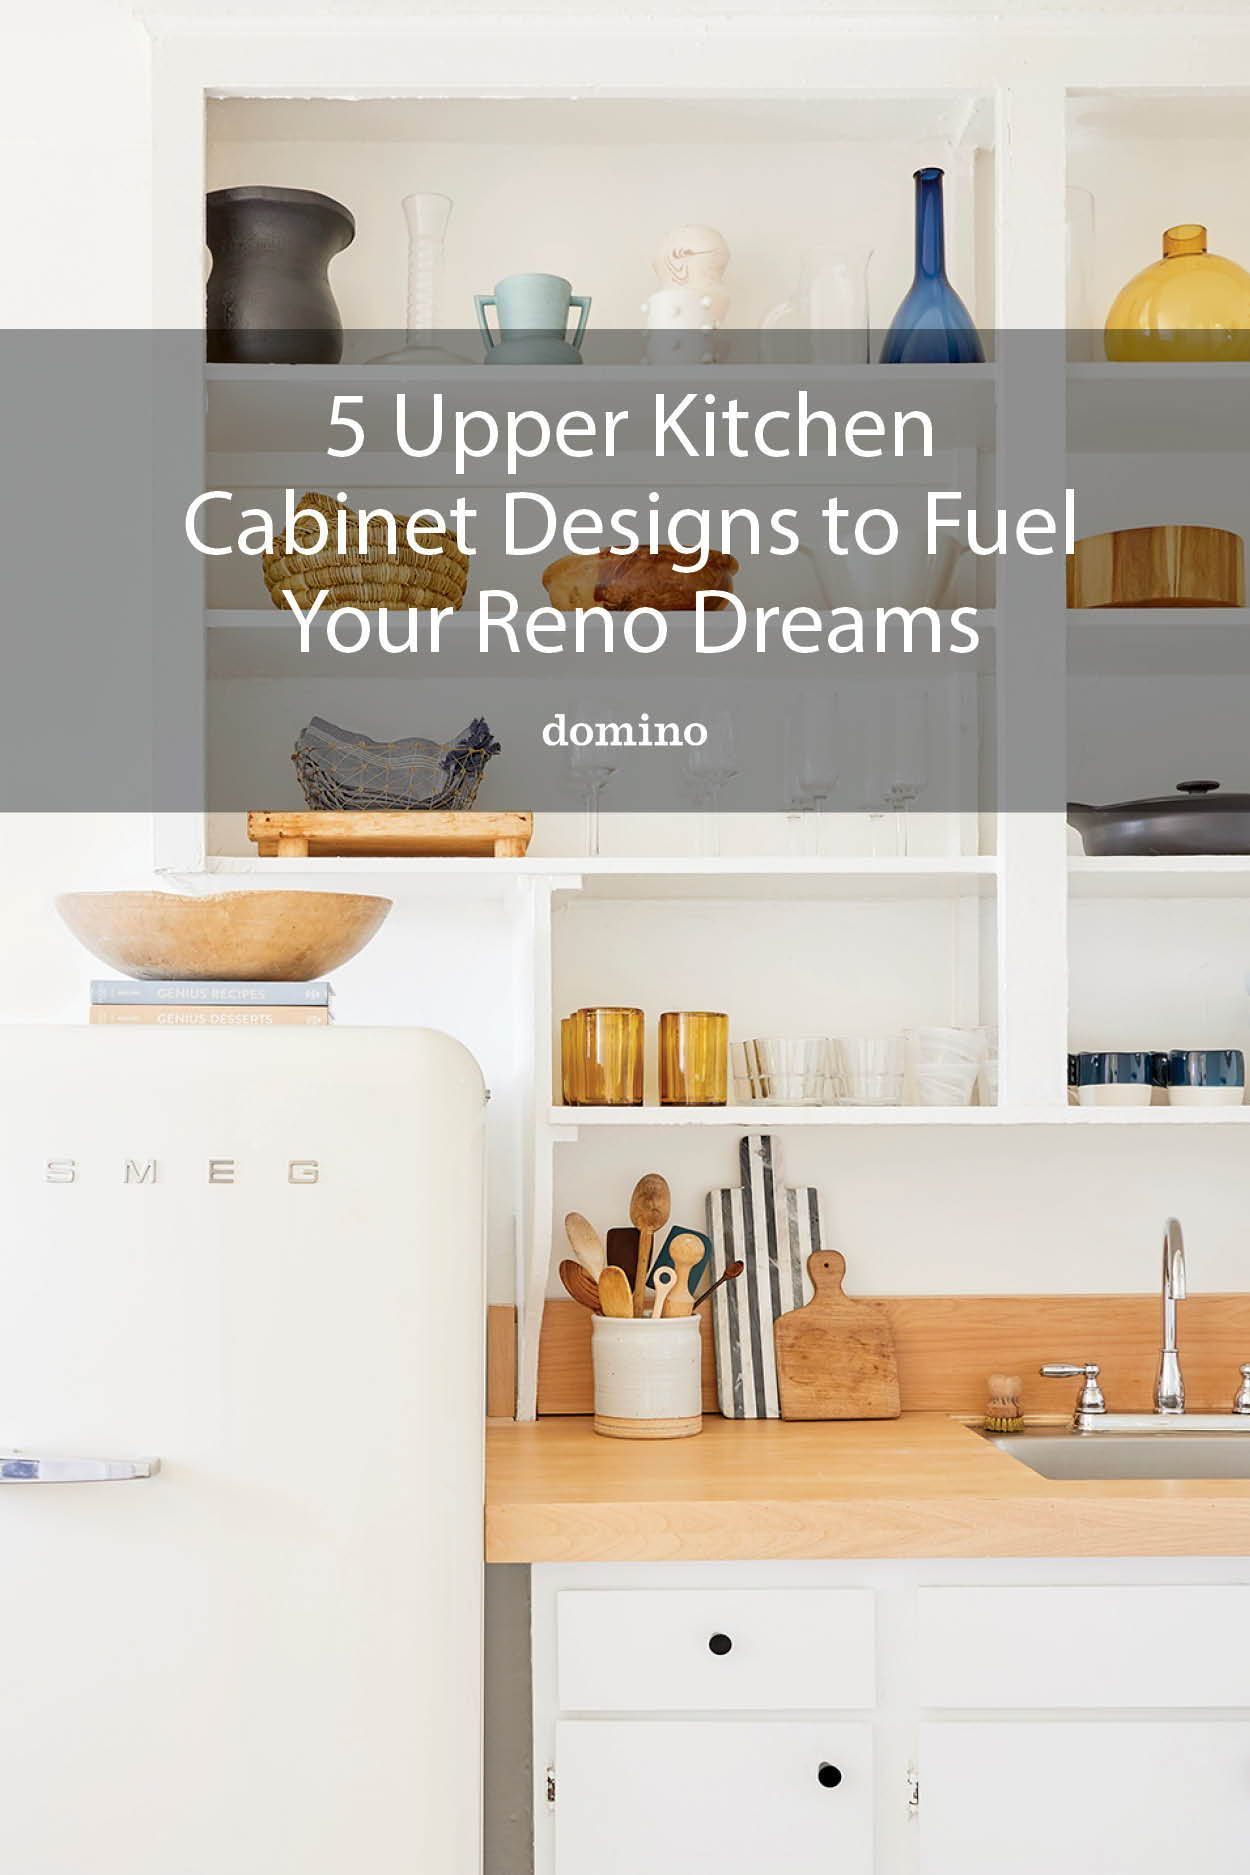 5 Types Of Upper Kitchen Cabinets For Every Design Style In 2020 Upper Kitchen Cabinets Kitchen Cabinet Design Kitchen Cabinets